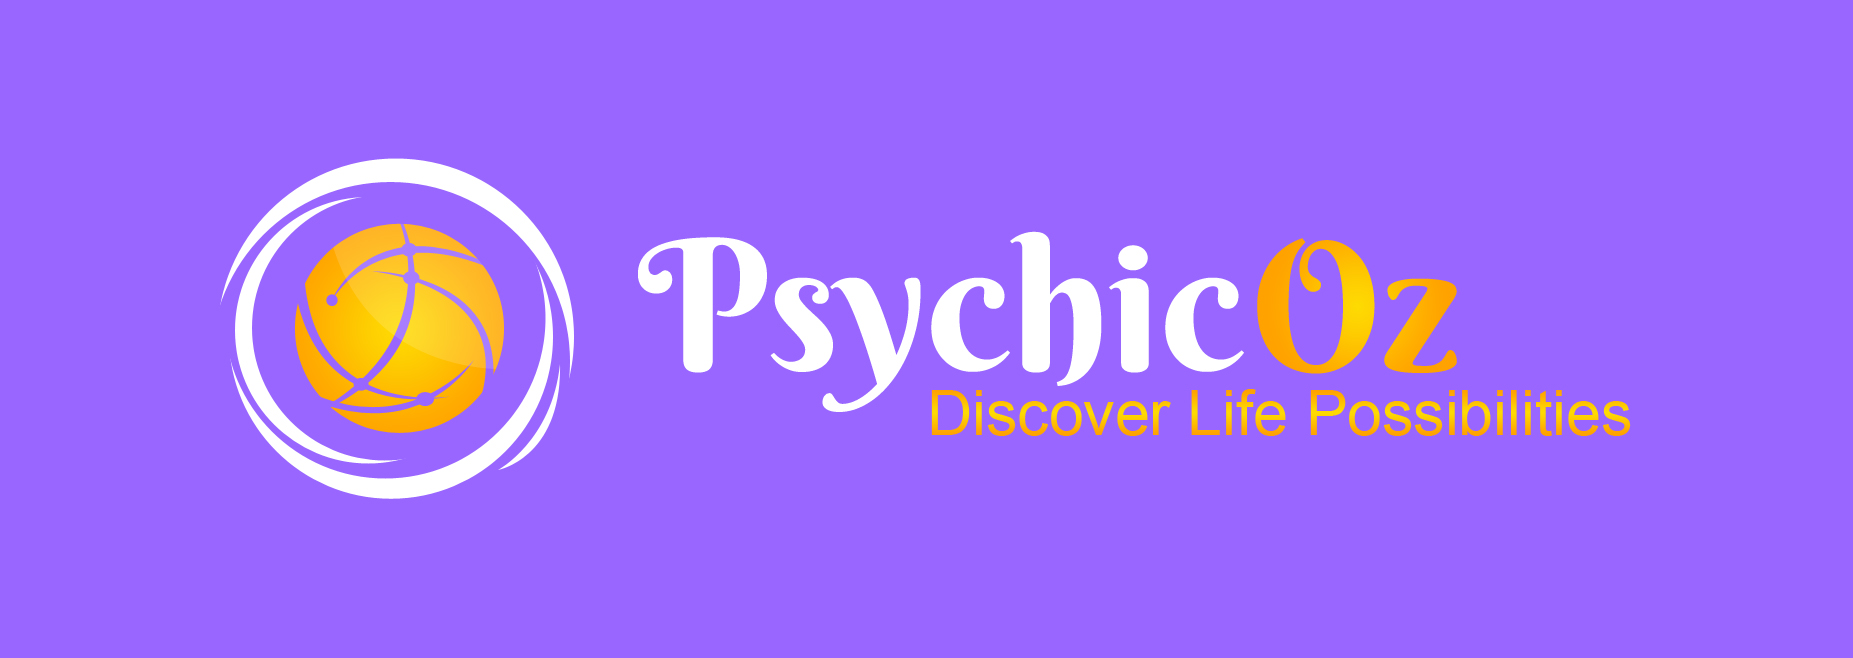 Online Love Psychics over the Phone – PsychicOz Review